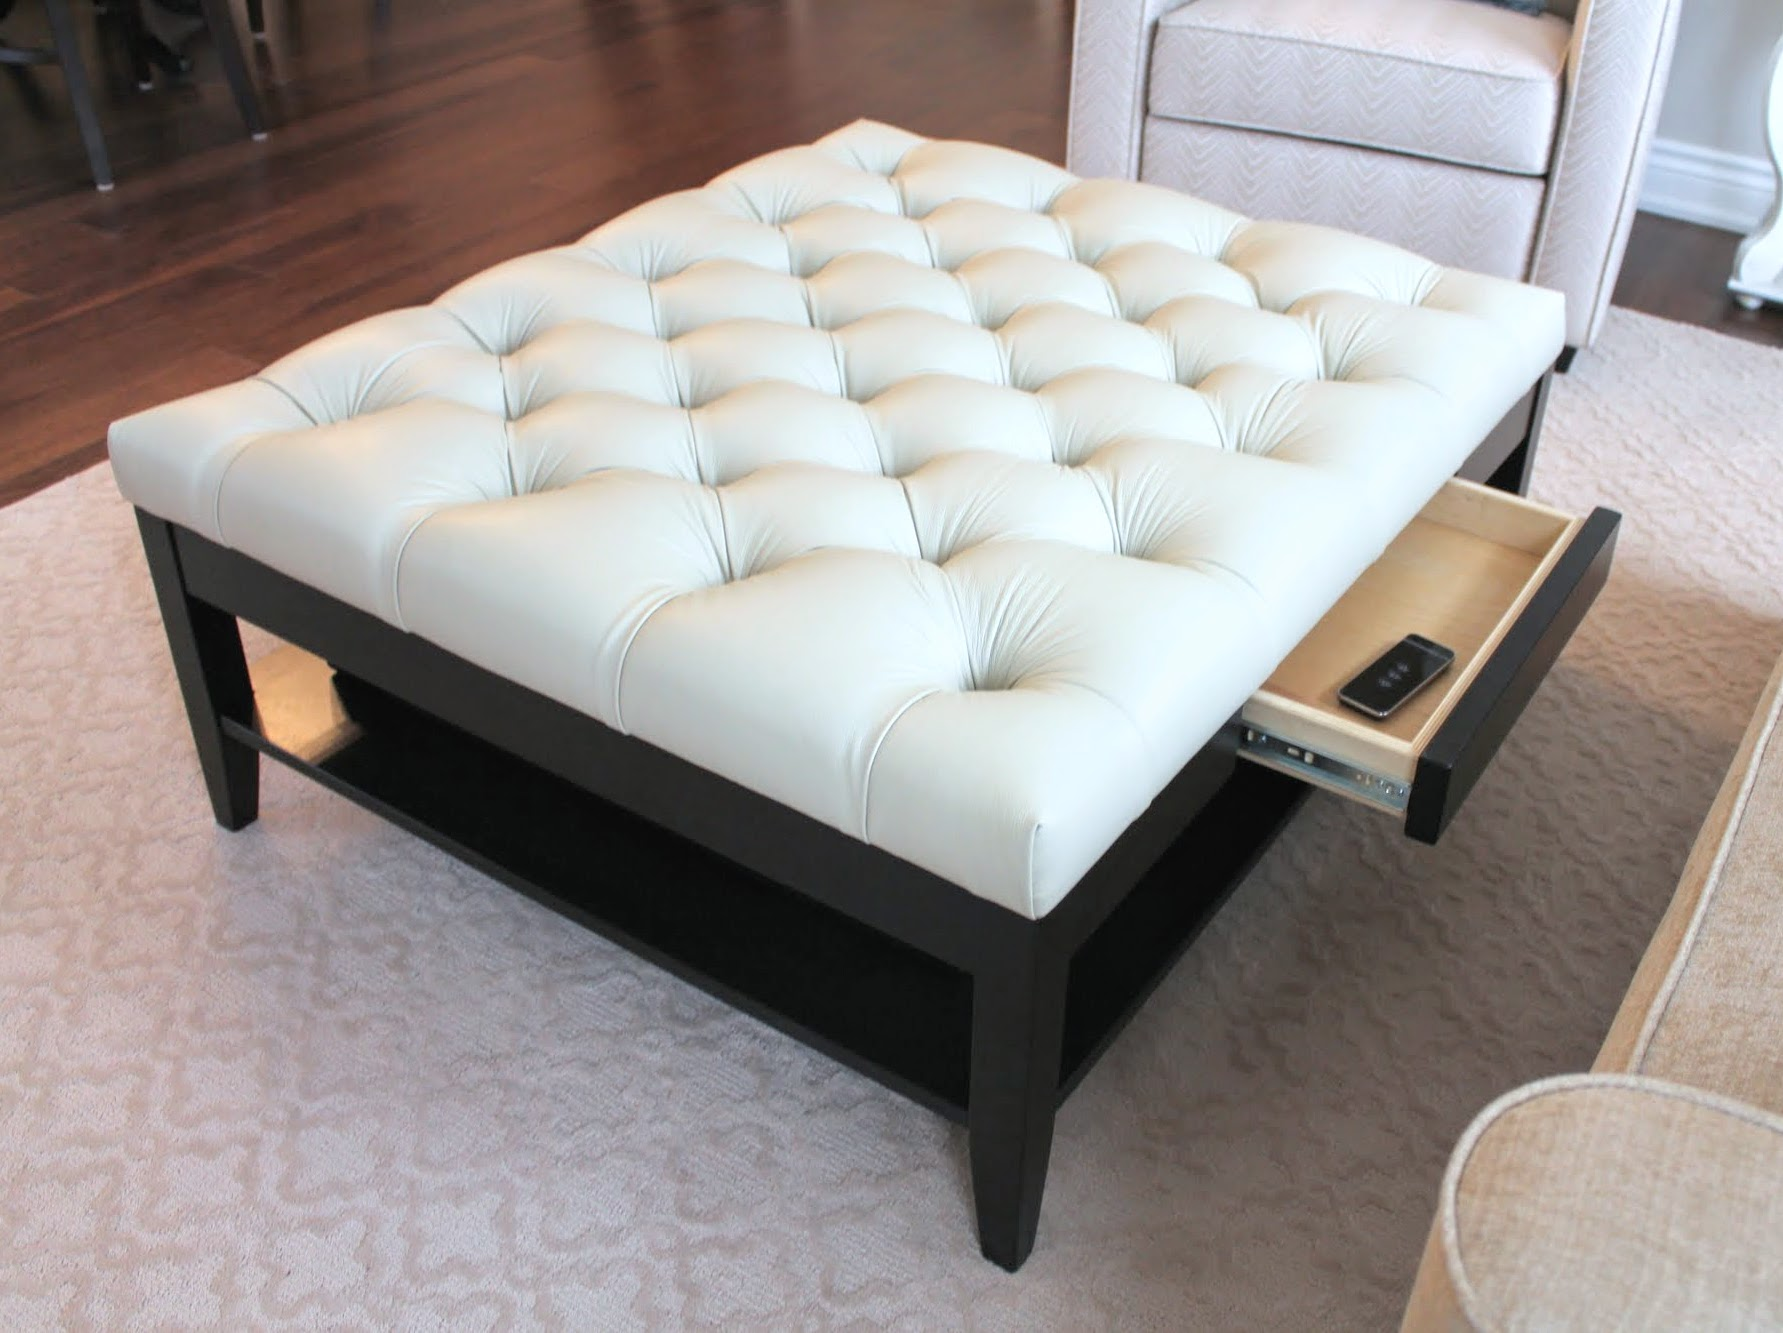 DecorStudio_TableOttoman (2).jpg